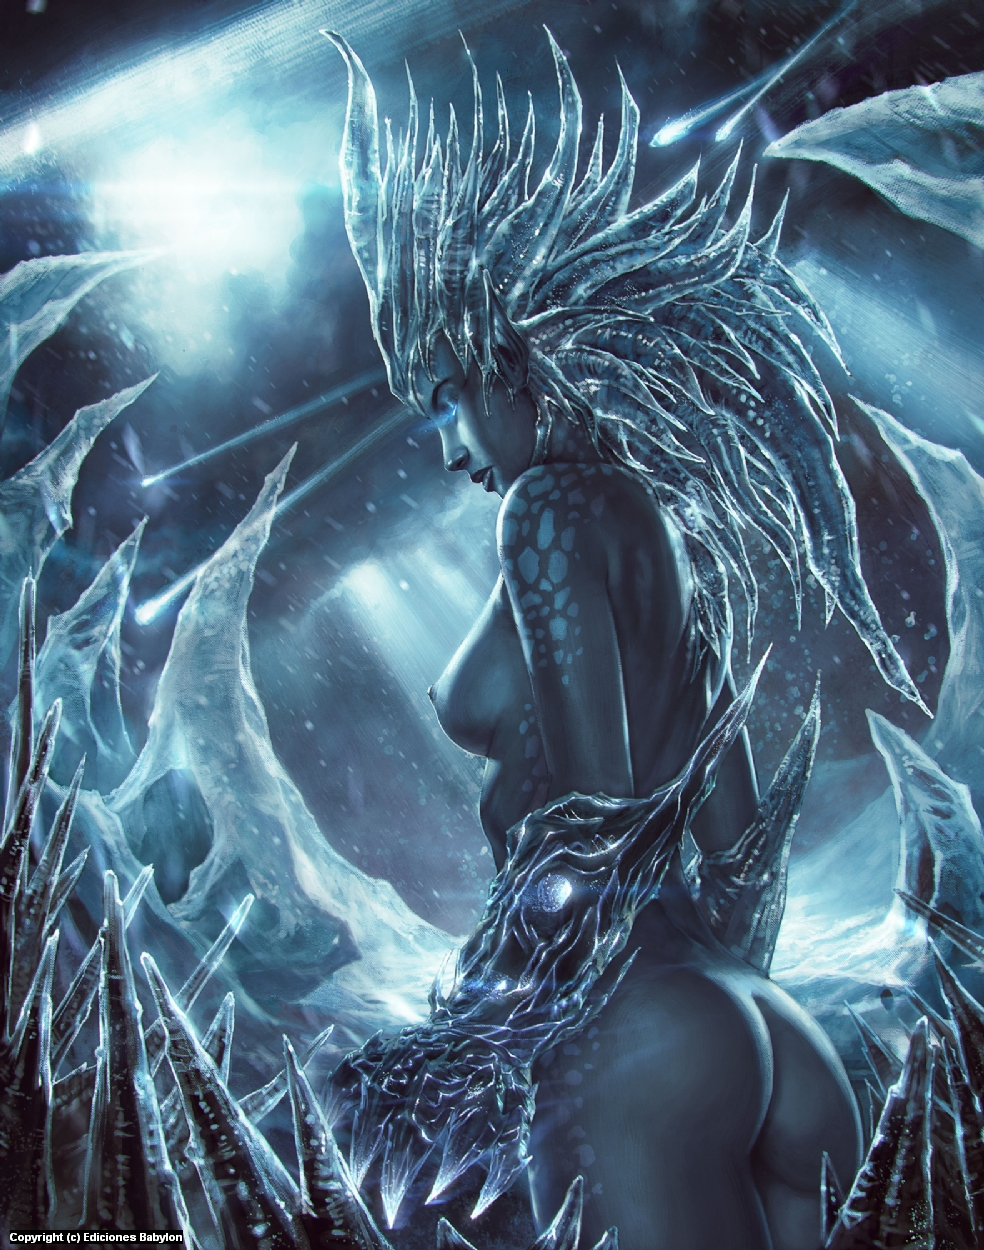 Ice Queen Artwork by Rafater